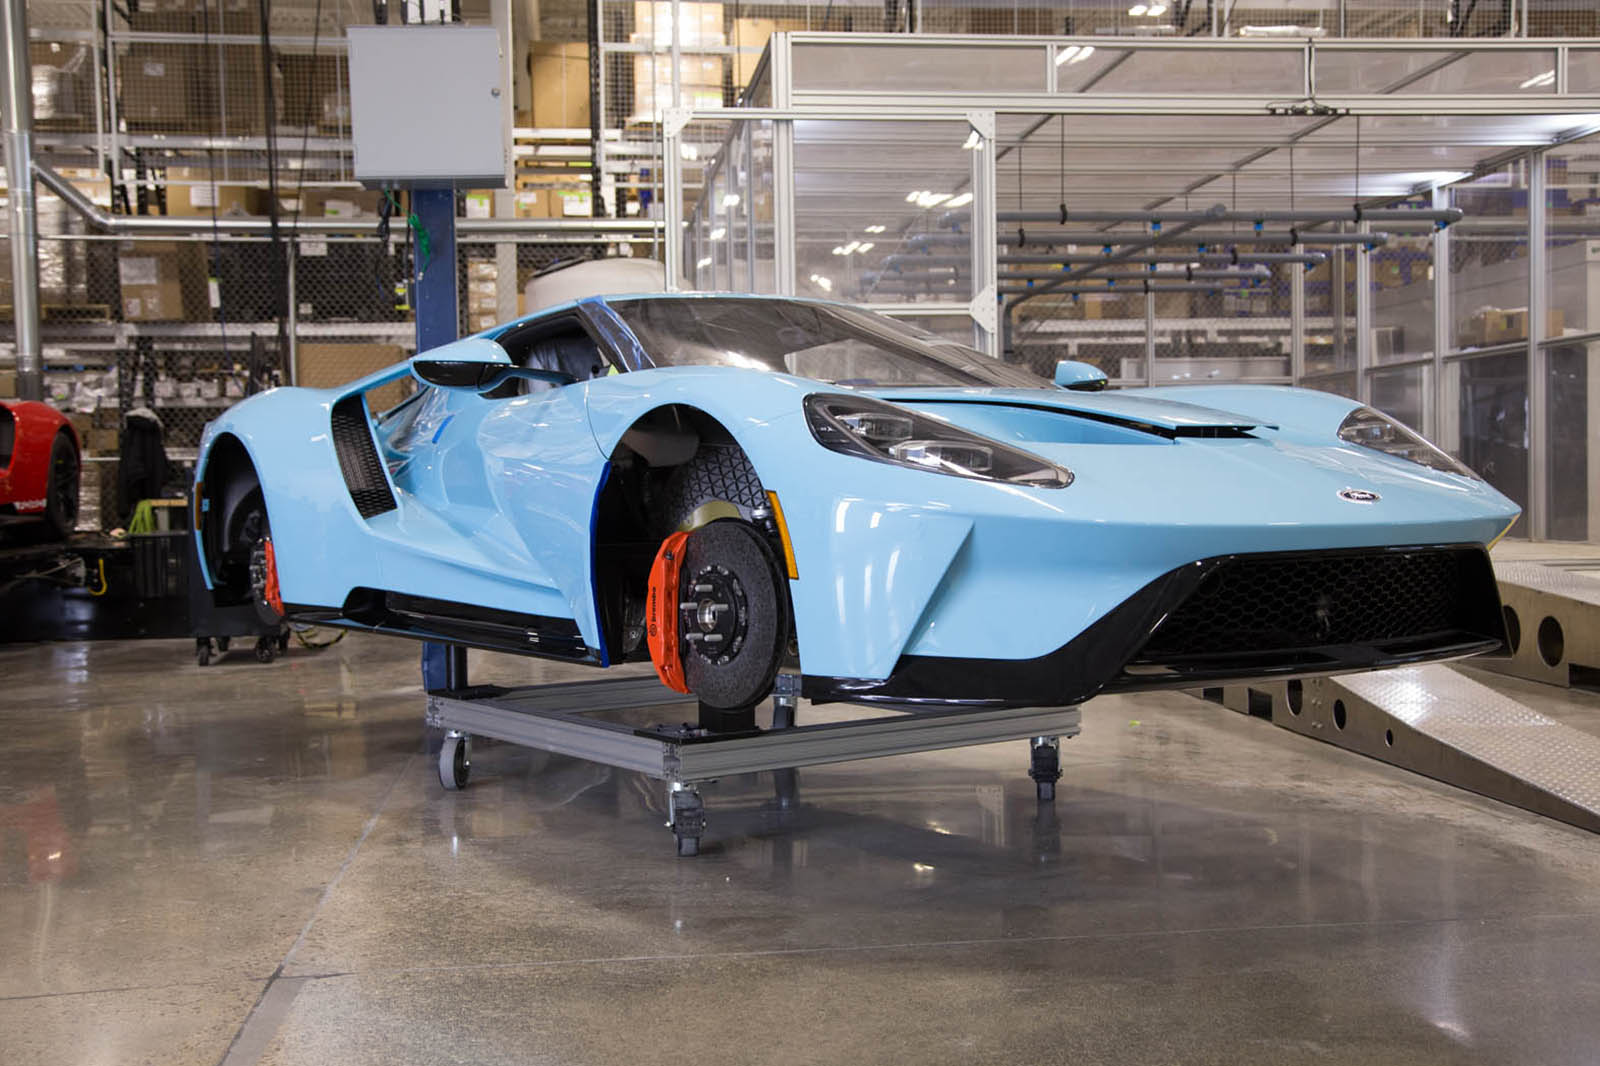 Until Now The Gt Has Been Best Known As A Le Mans Class Winner Having Achieved In  Its Creators Desire To Emulate The Gts Famous